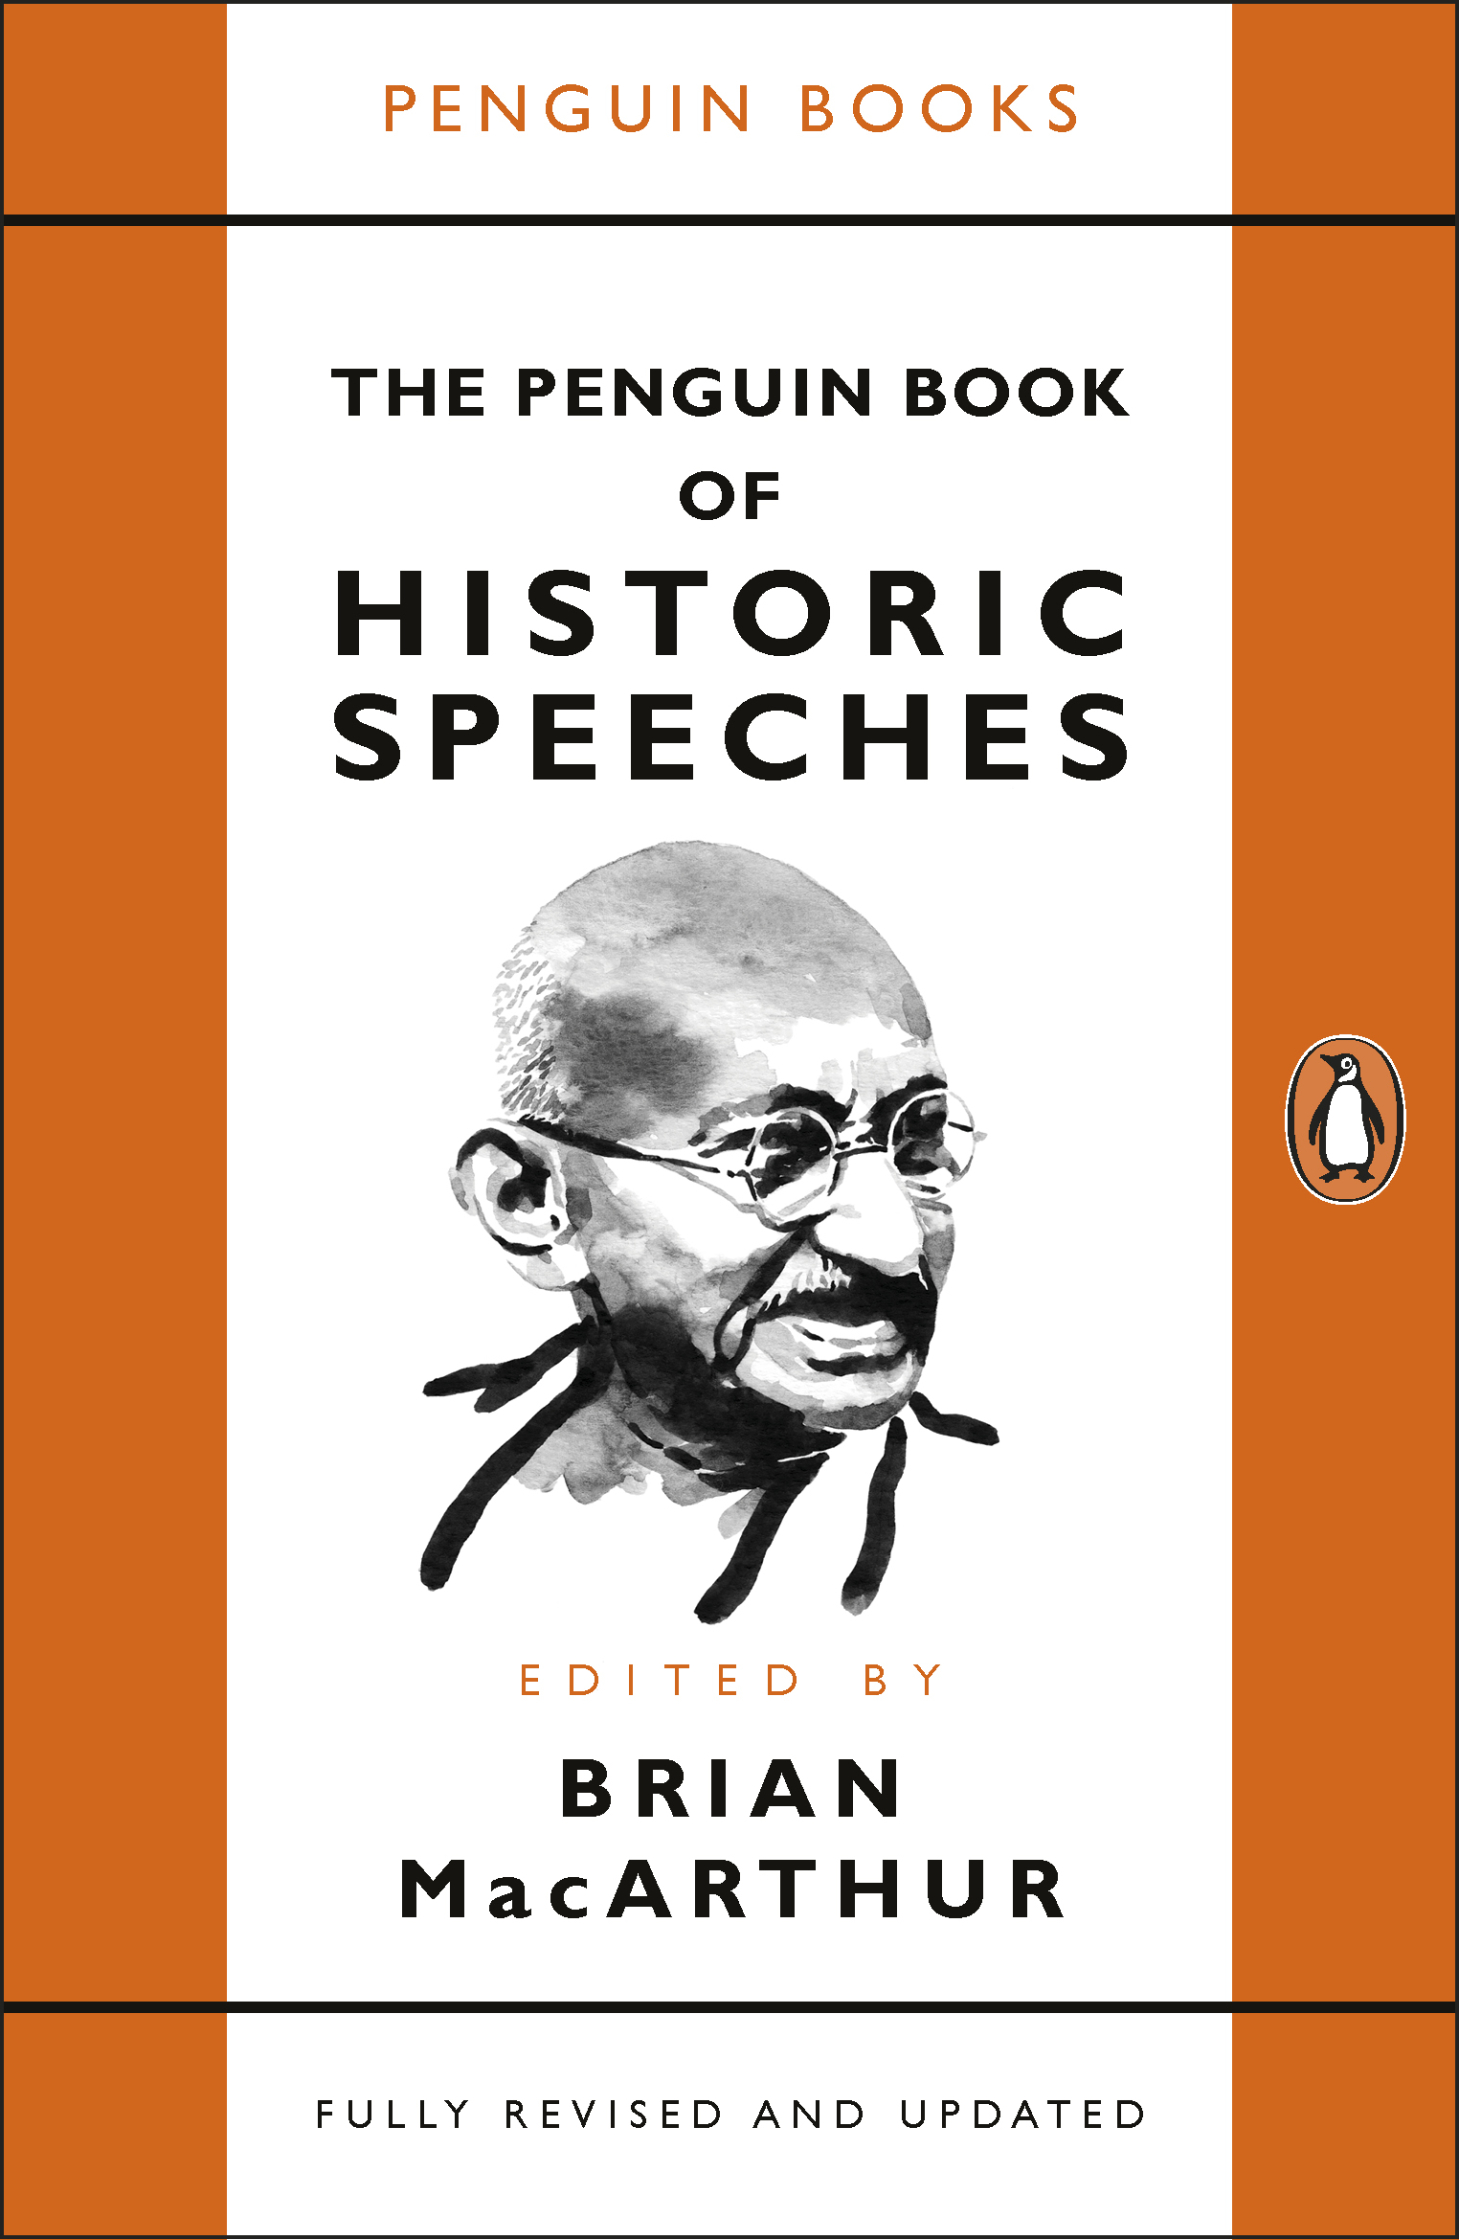 Penguin_Books_'Historic_Speeches'_Cover.jpg